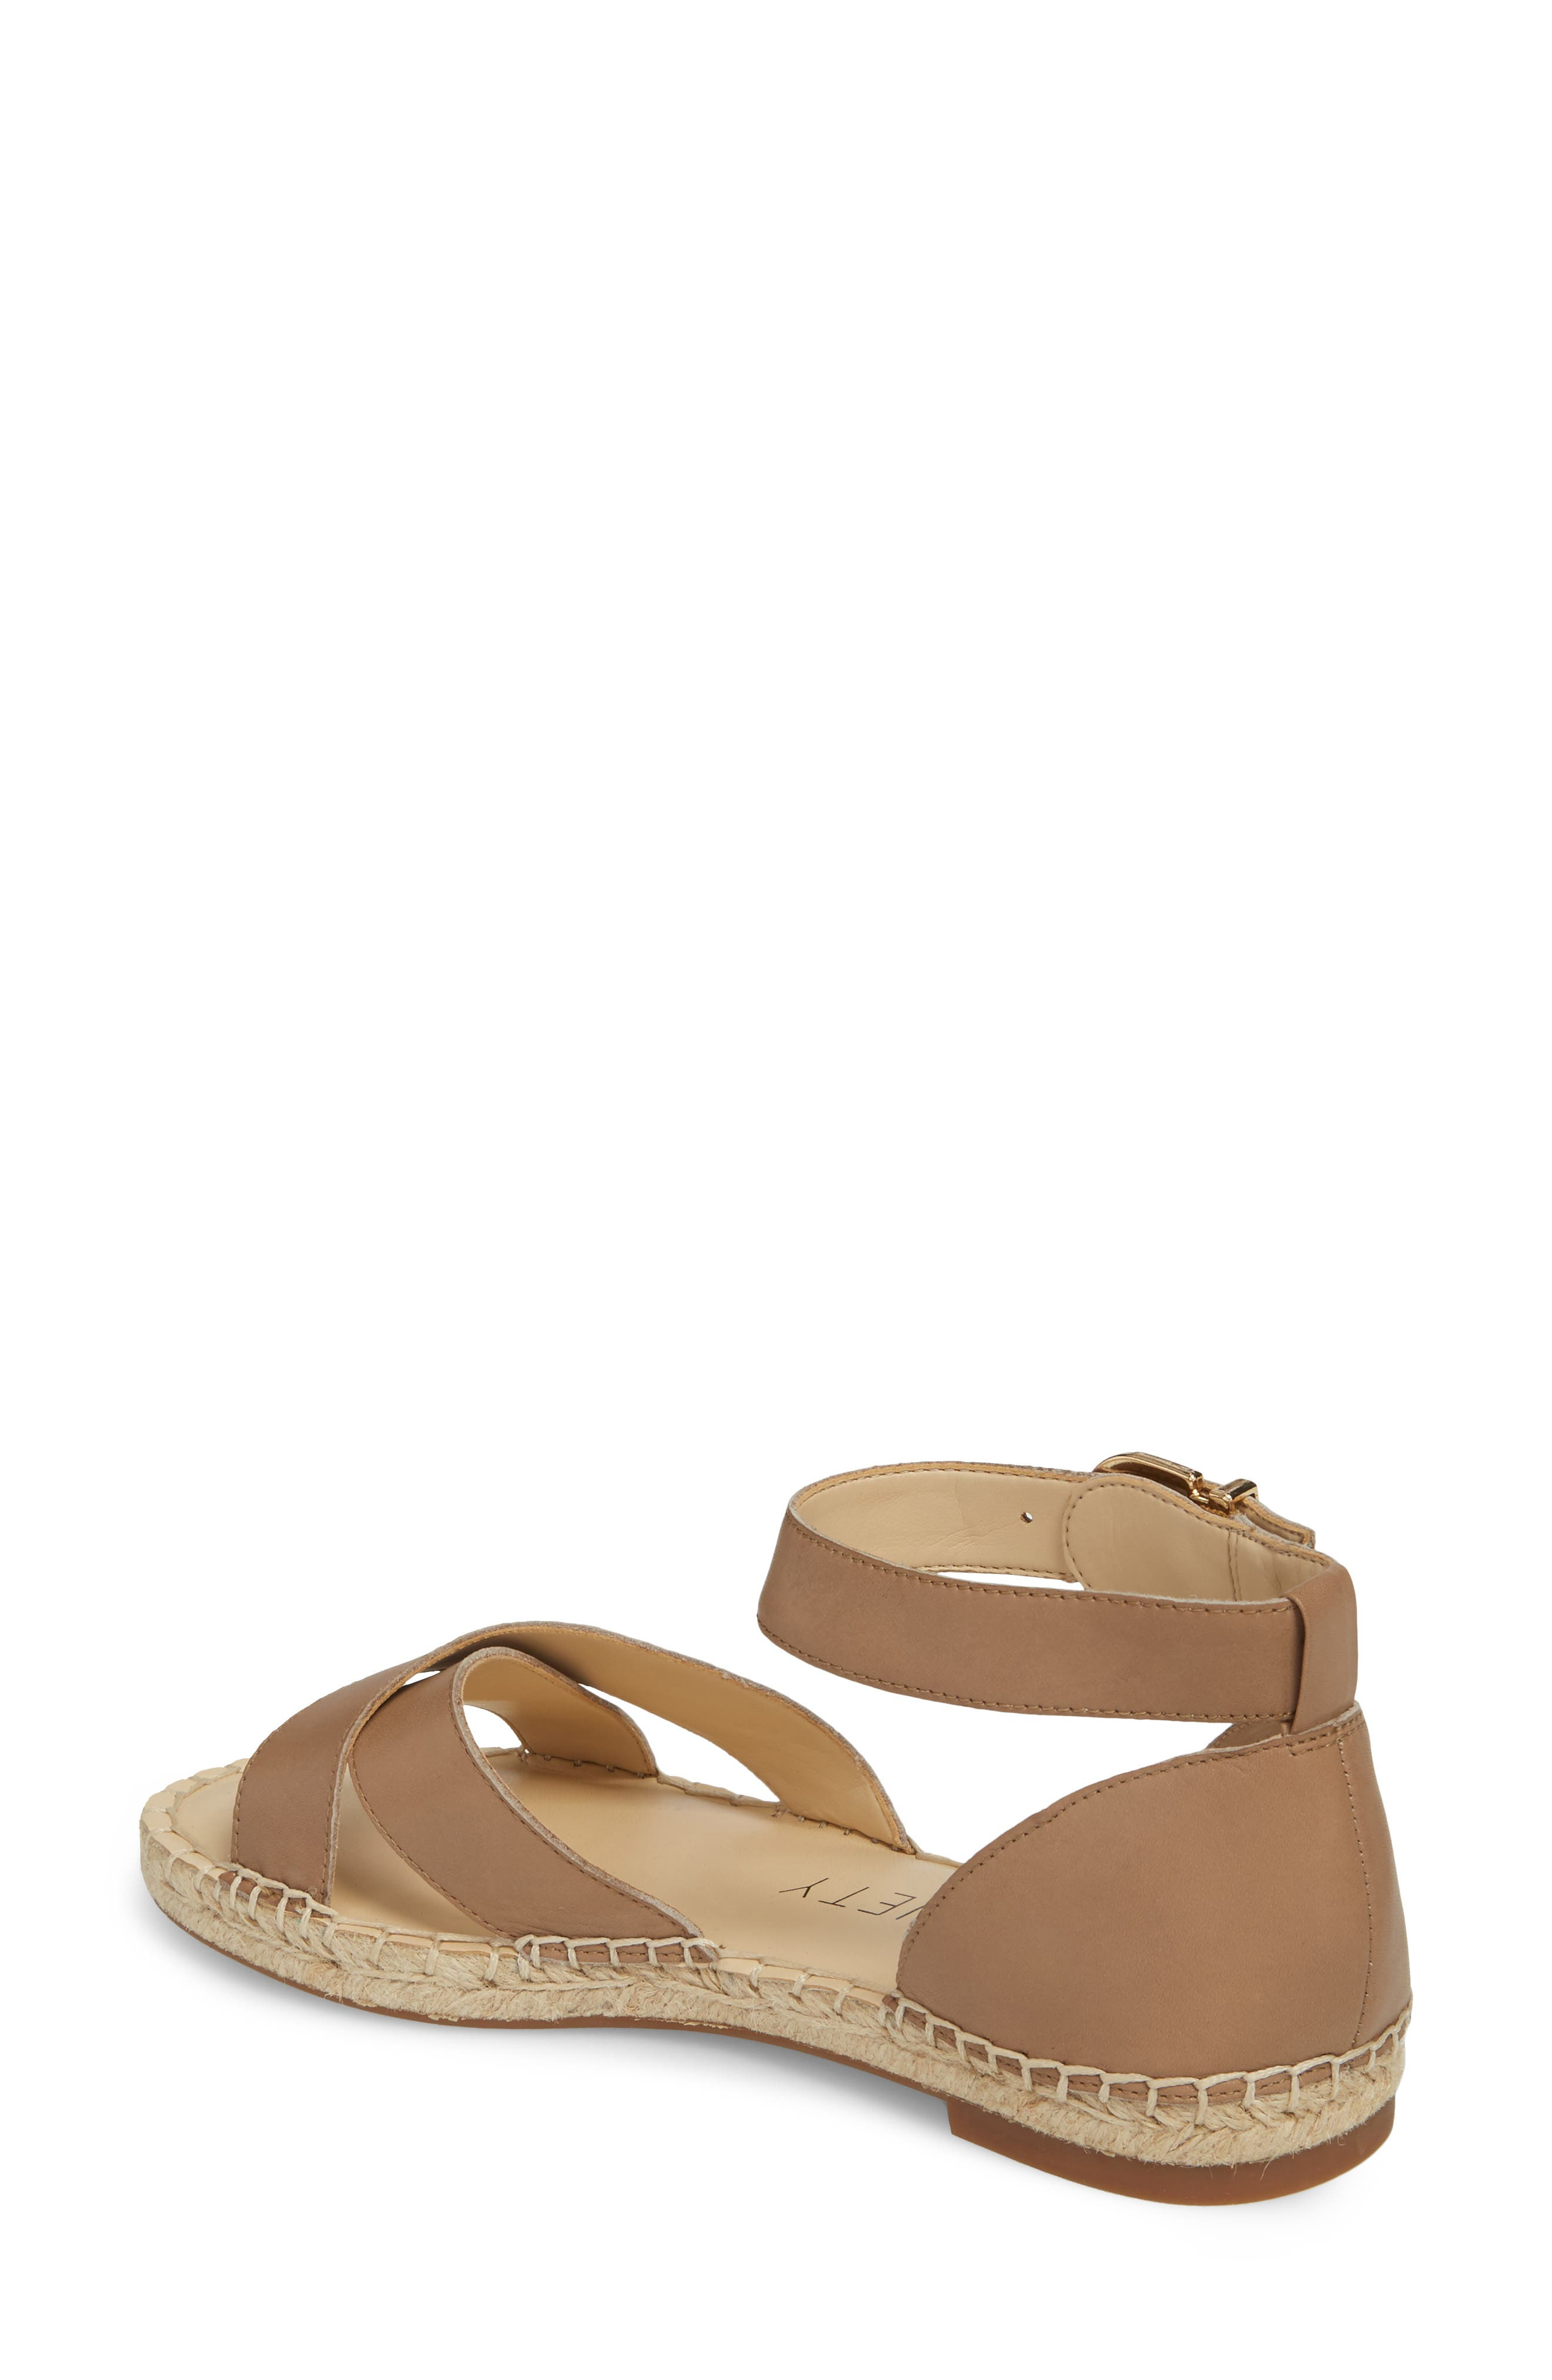 Saundra Espadrille Sandal,                             Alternate thumbnail 6, color,